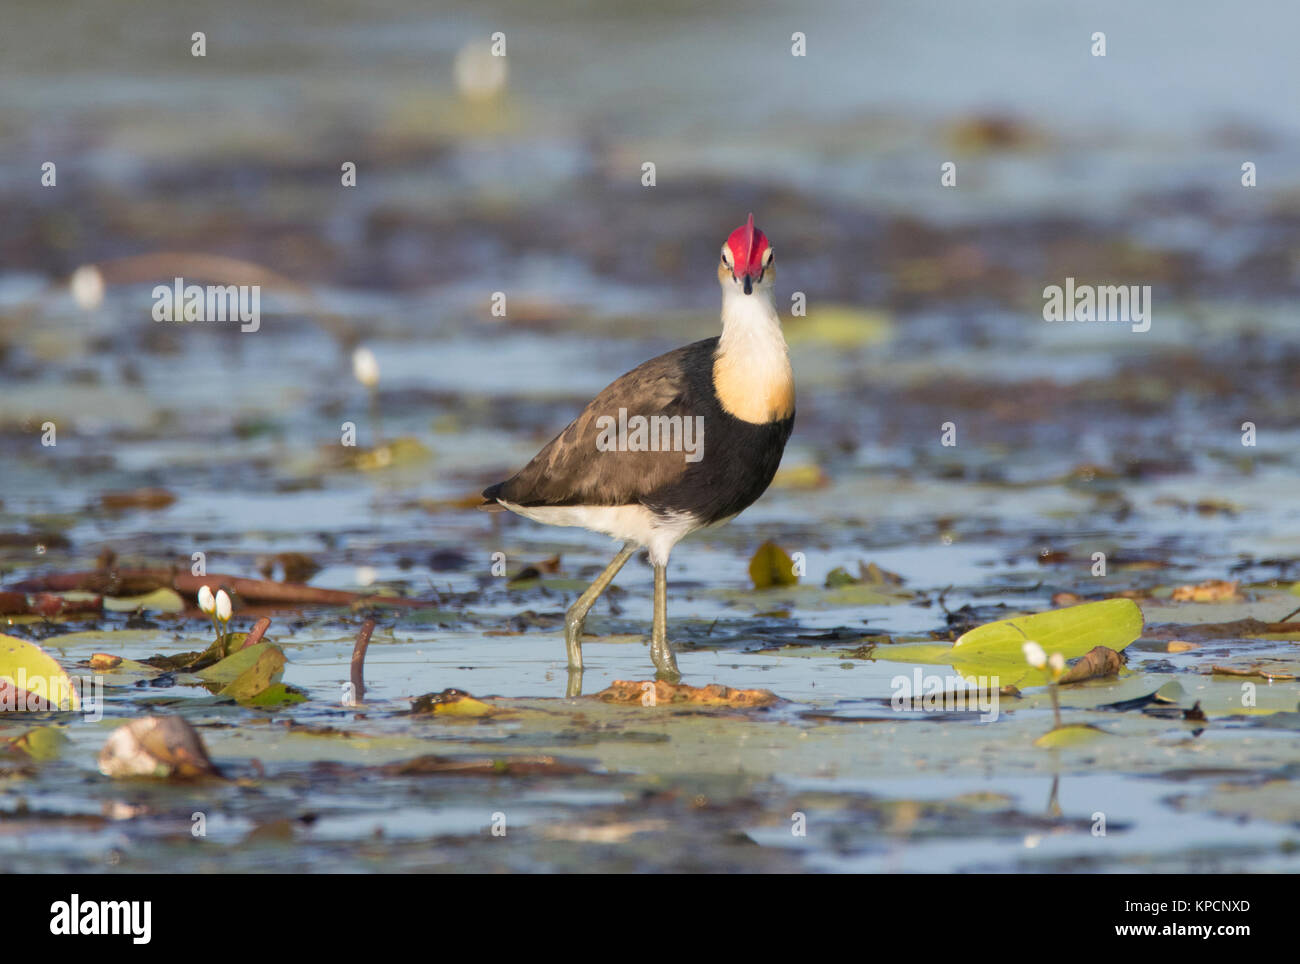 A Comb-crested Jacana, Irediparra gallinacea, wading on water lillies searching for food in an Australian outback - Stock Image